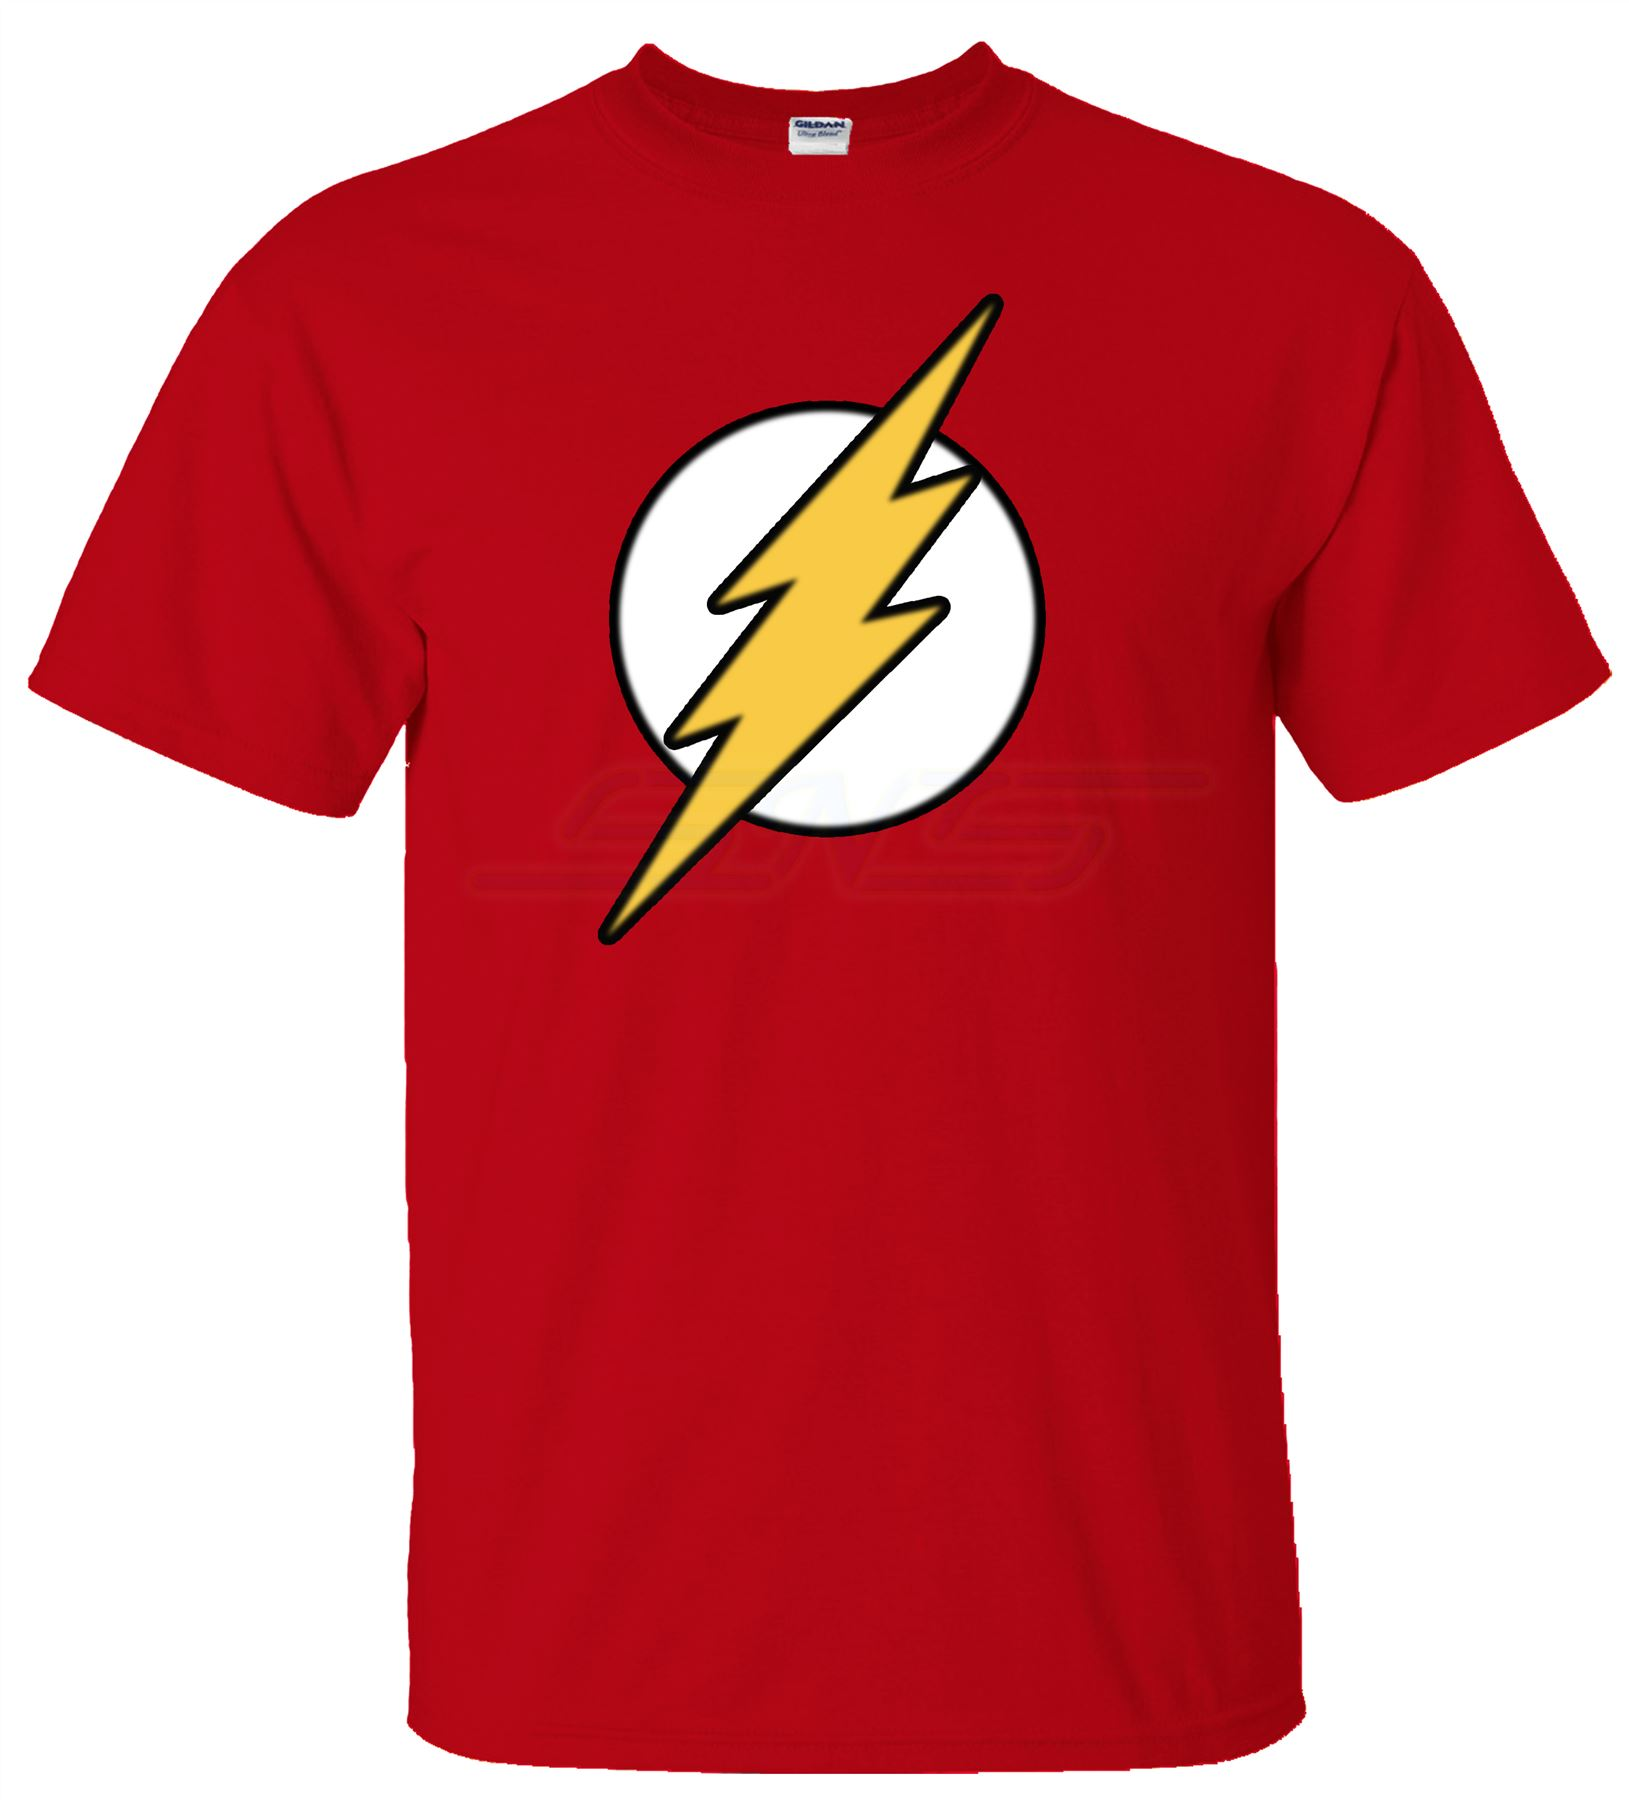 Mens boy unisex flash super hero bazinga t shirt tee top t Boys superhero t shirts